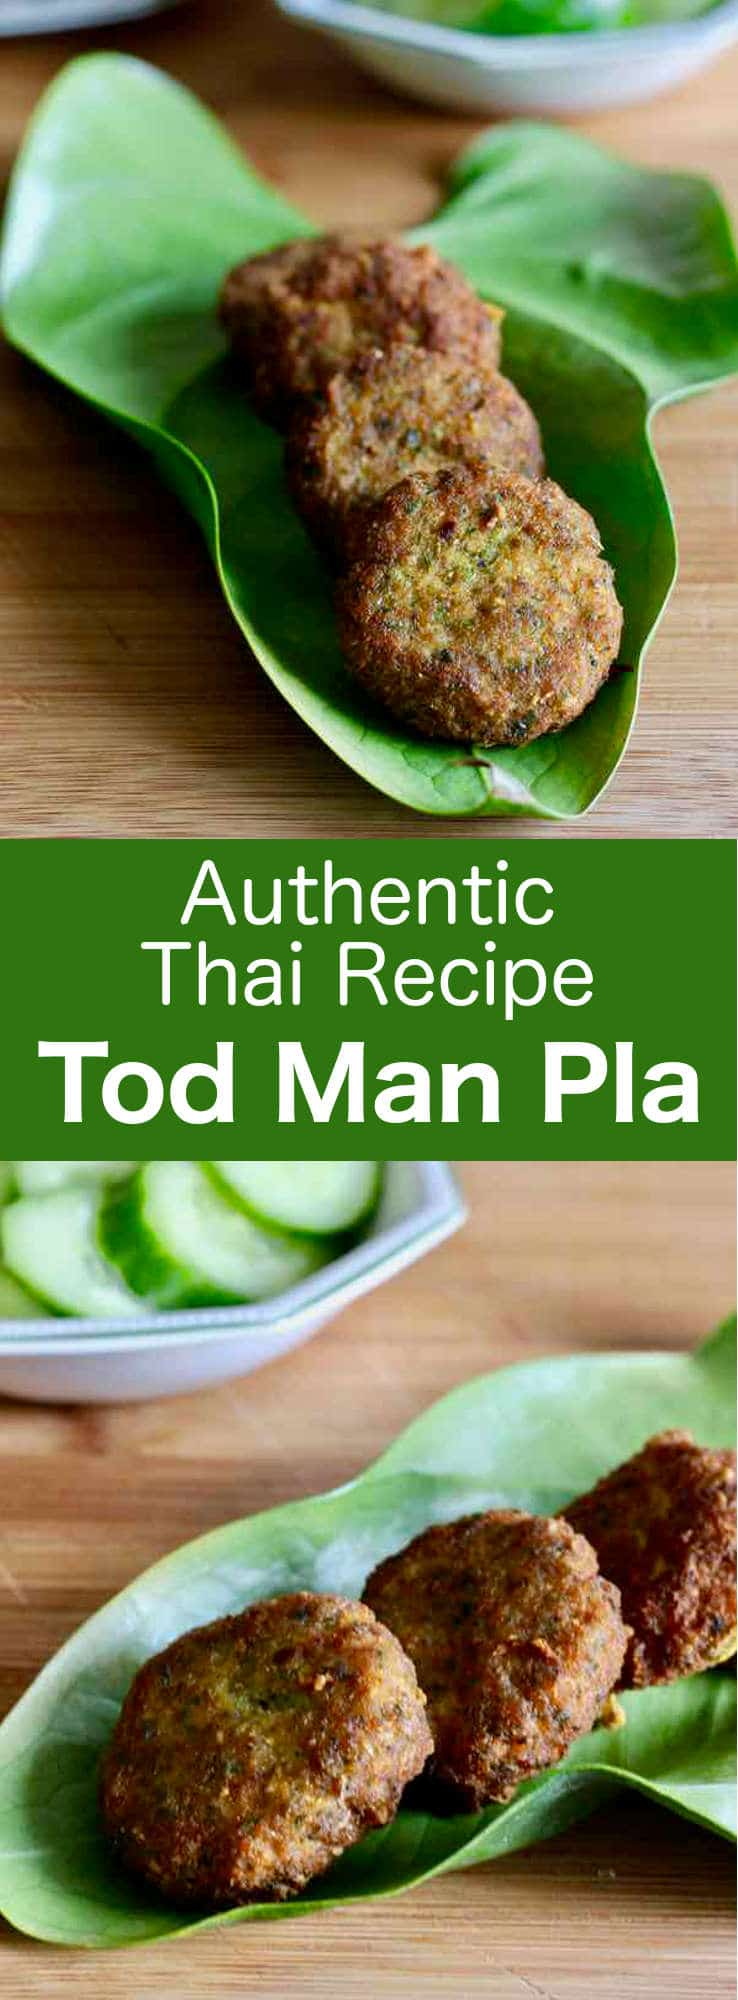 Tod man pla are delicious small fish cakes prepared with yardlong beans that are very popular in Thai street food cuisine. #Thailand #Asian #196flavors